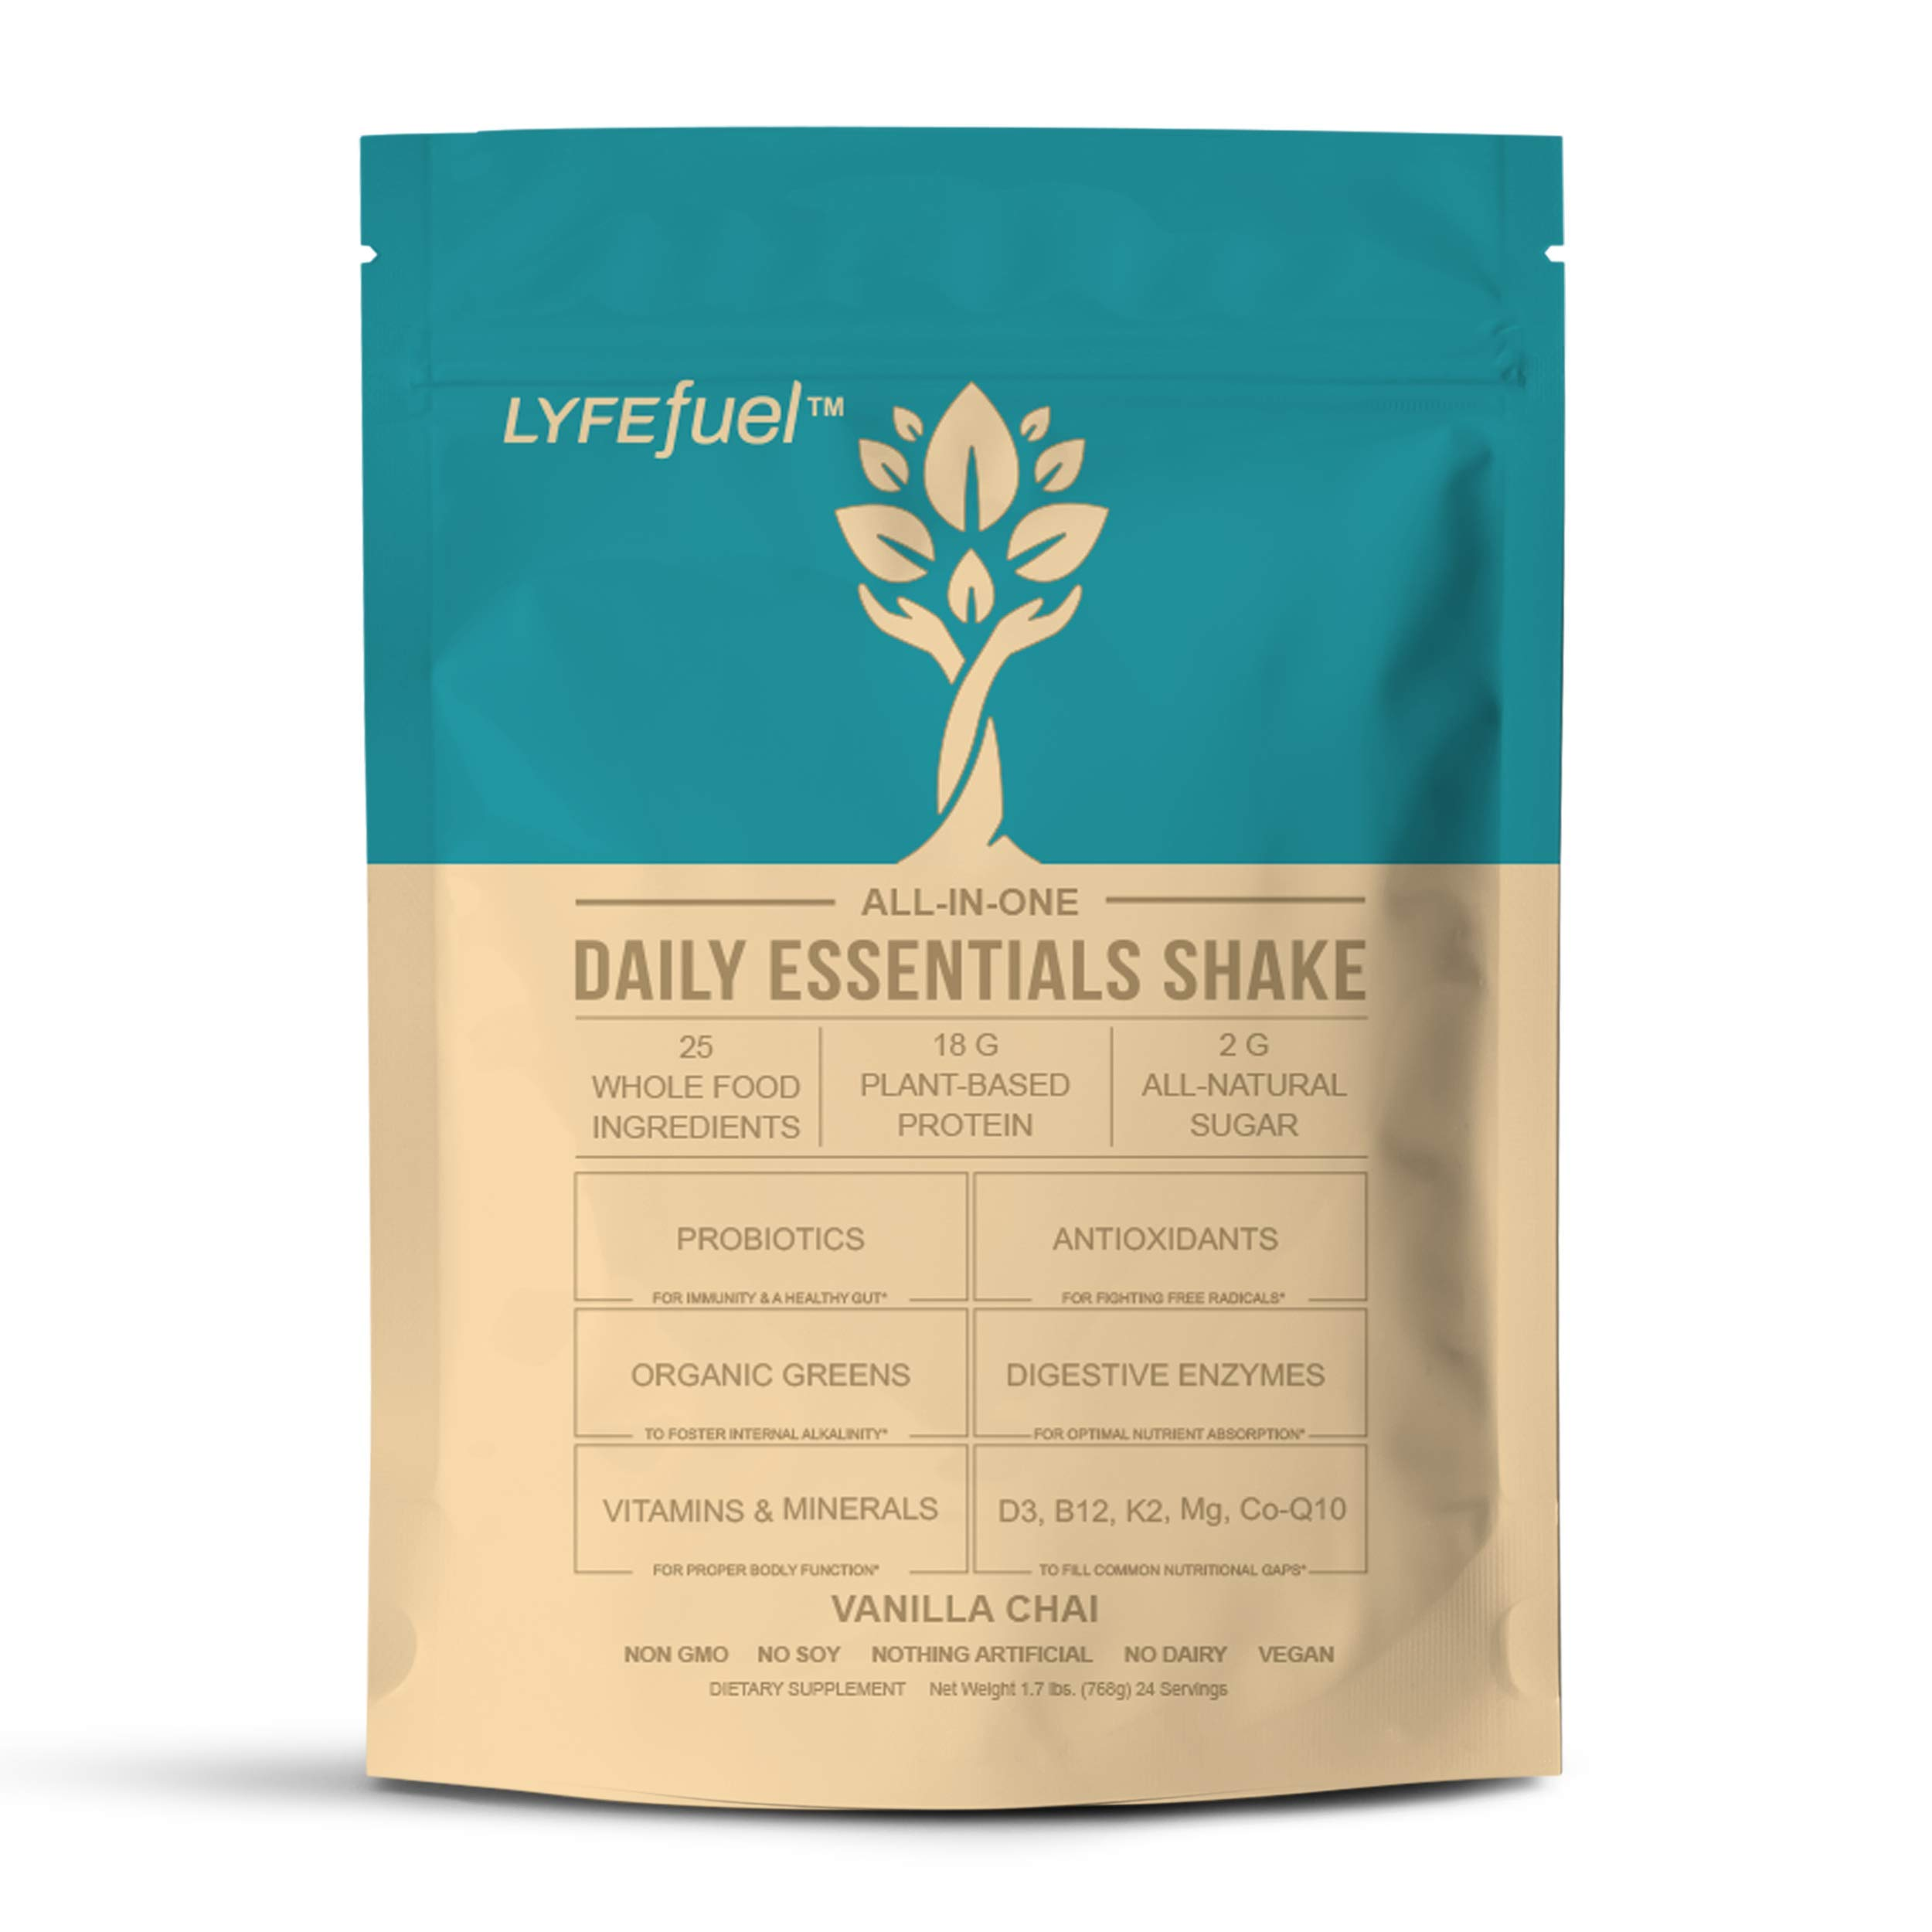 Essential Meal Replacement Shakes by LYFE Fuel   All-in-One Low Carb Keto Superfood Powder for Weight Loss and Optimal Nutrition   Plant Protein, Organic Greens, Vitamins, Minerals   24 Vanilla Meals